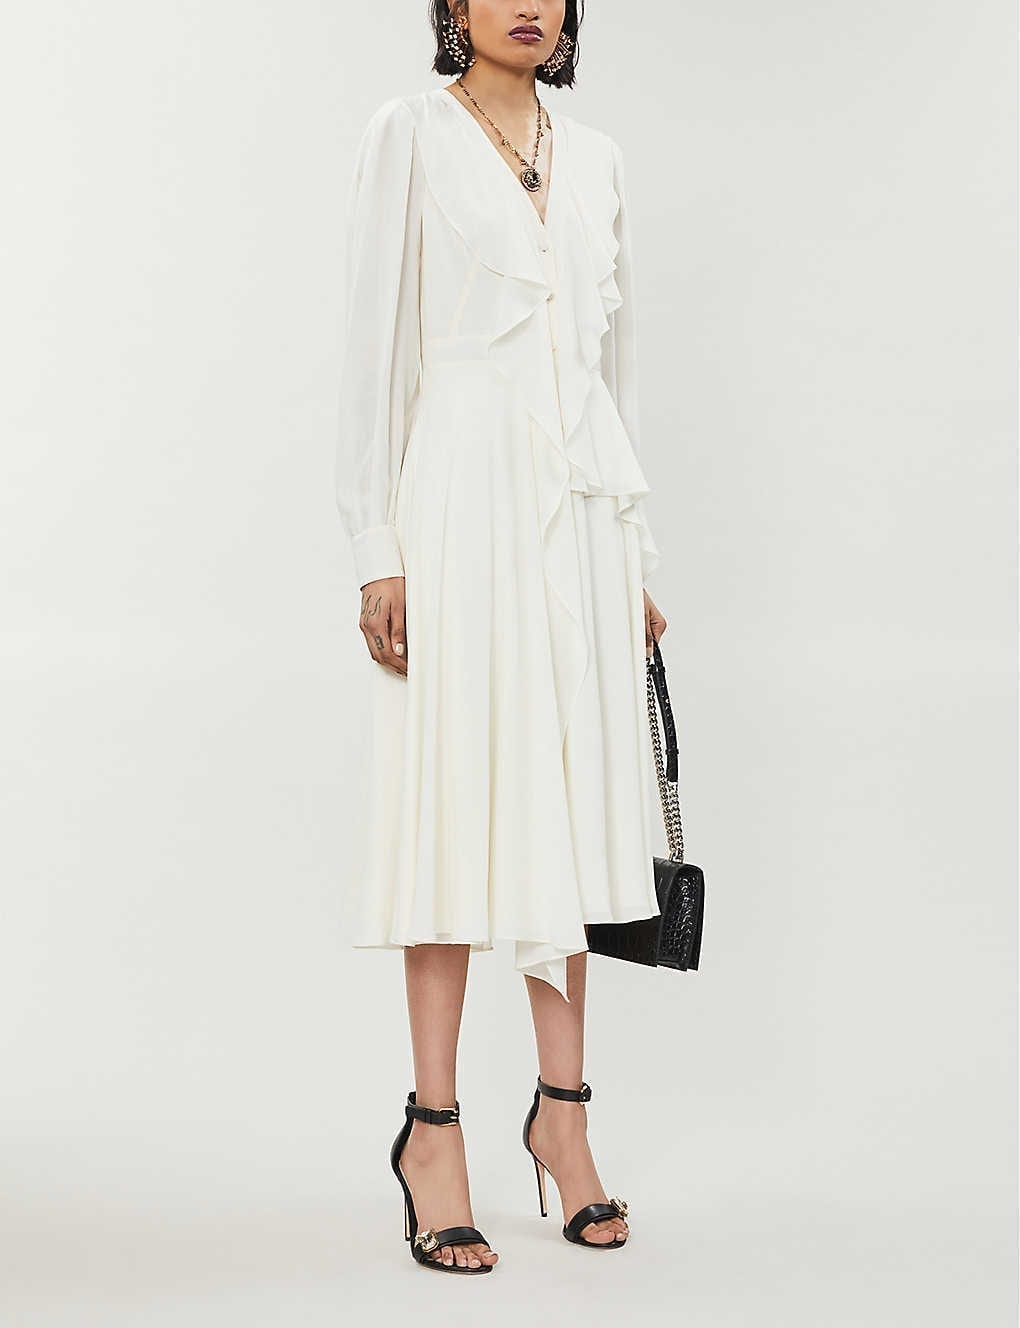 ALEXANDER MCQUEEN Ruffle-Trim Silk-Crepe Midi Dress